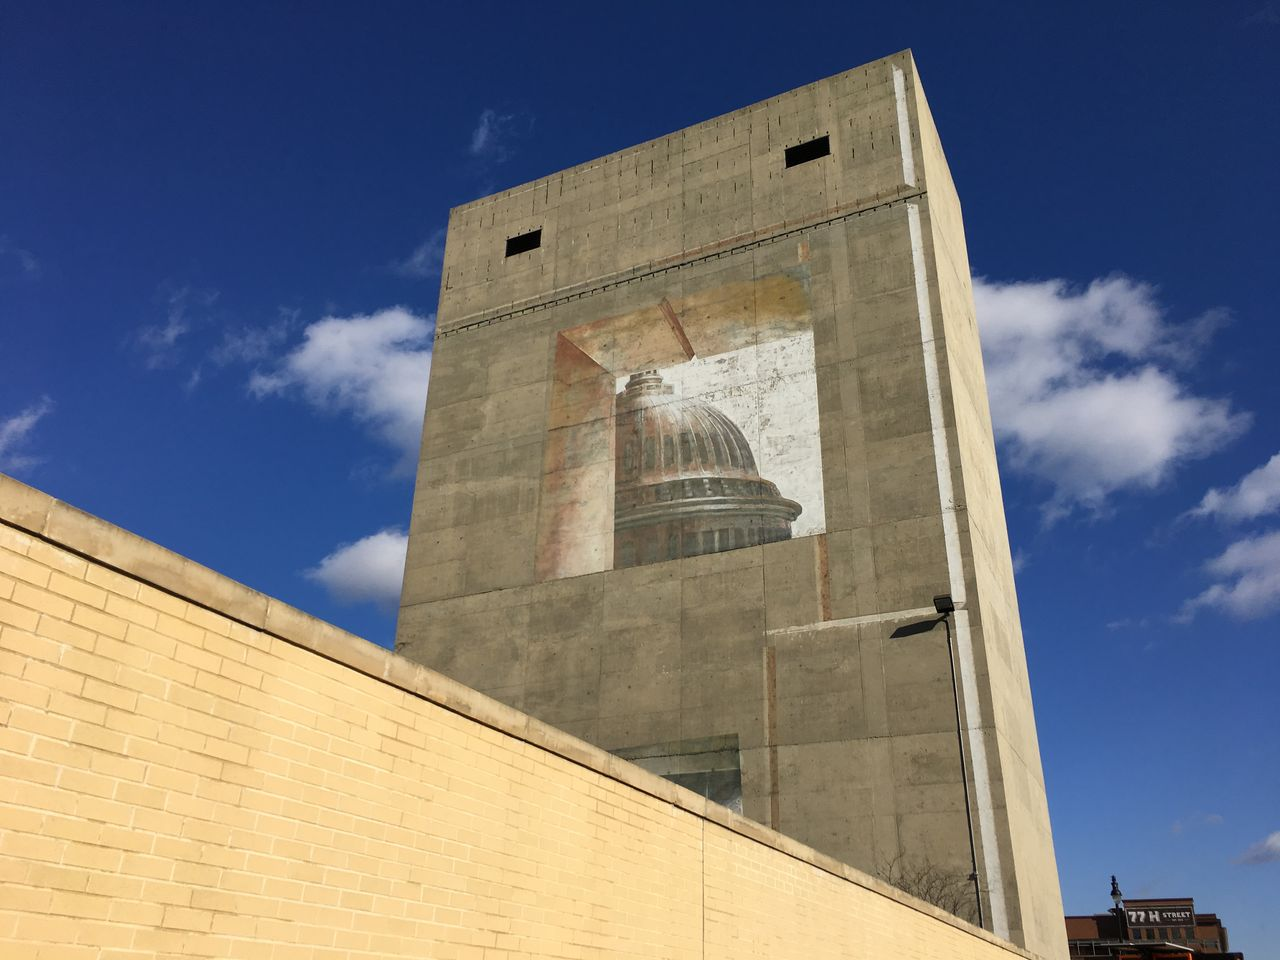 mural of capitol hill Architecture Building Exterior Built Structure Capitol Hill Clock Day Low Angle View No People Outdoors Sky Sunlight Minimalist Architecture